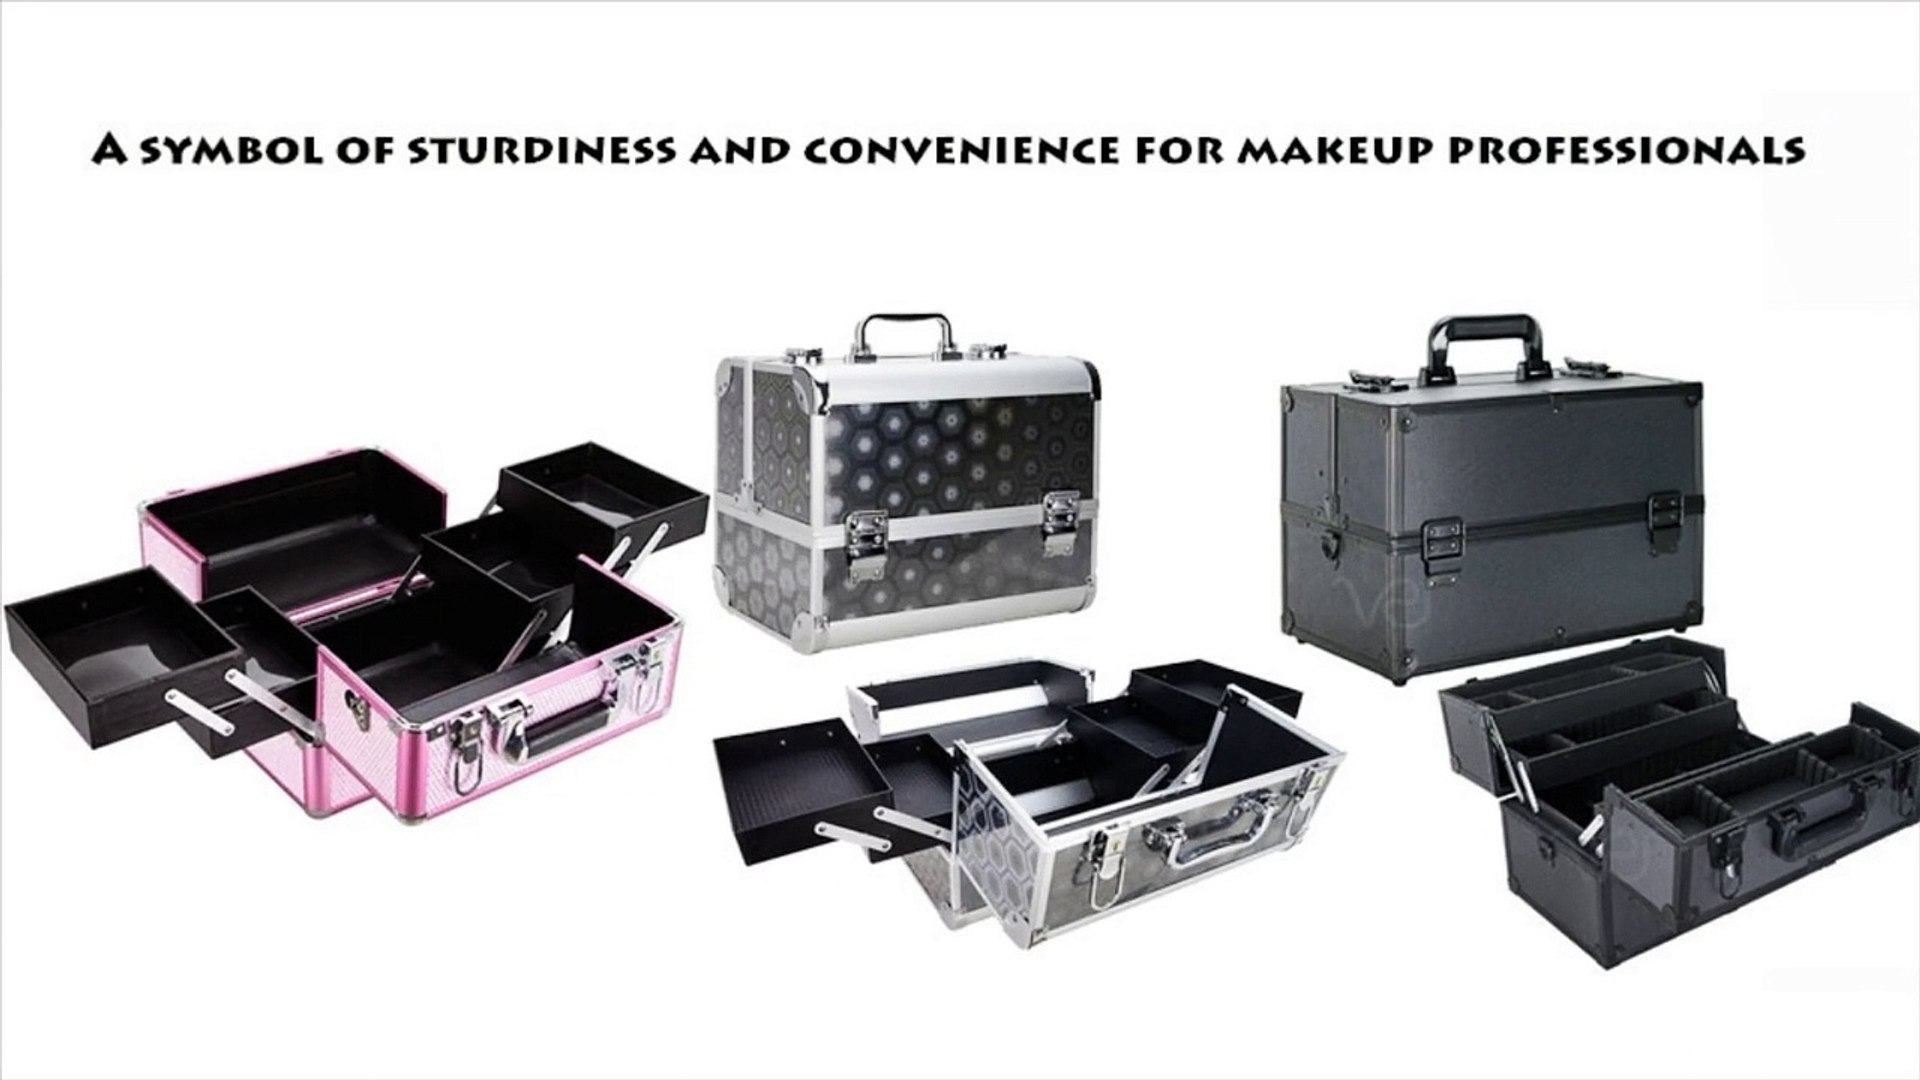 Aluminum makeup case and furniture – A symbol of sturdiness and convenience for makeup professionals